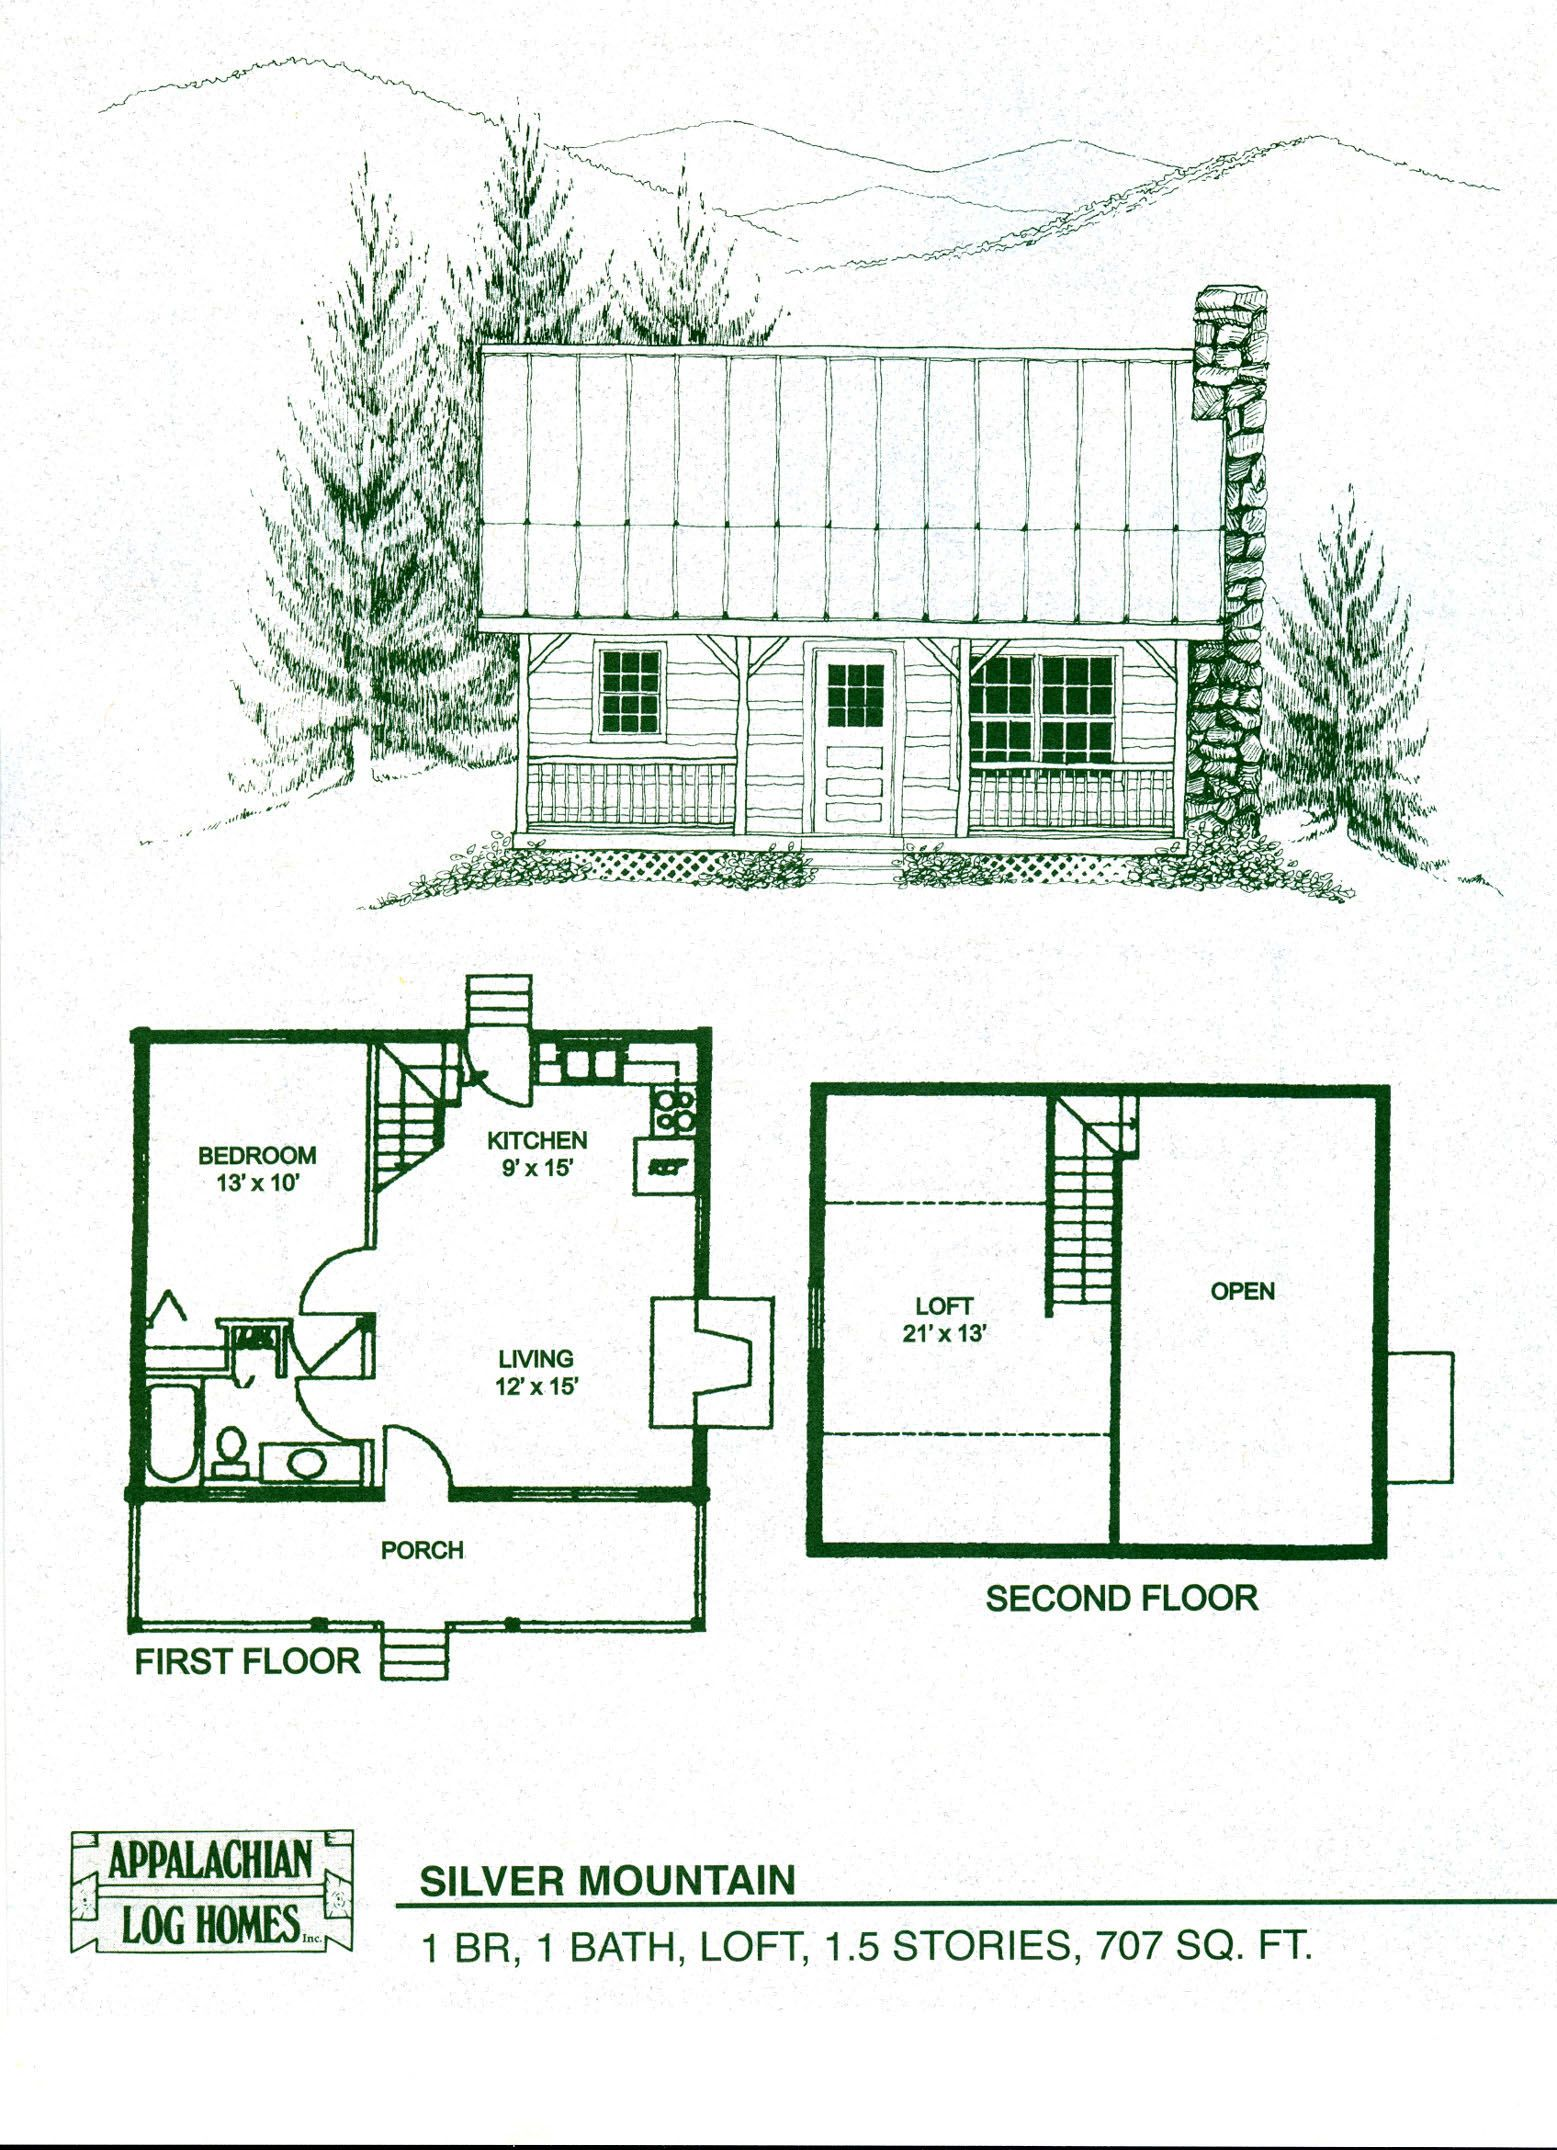 cabin with loft floor plans small cabin with loft floorplans photos of the small 23243